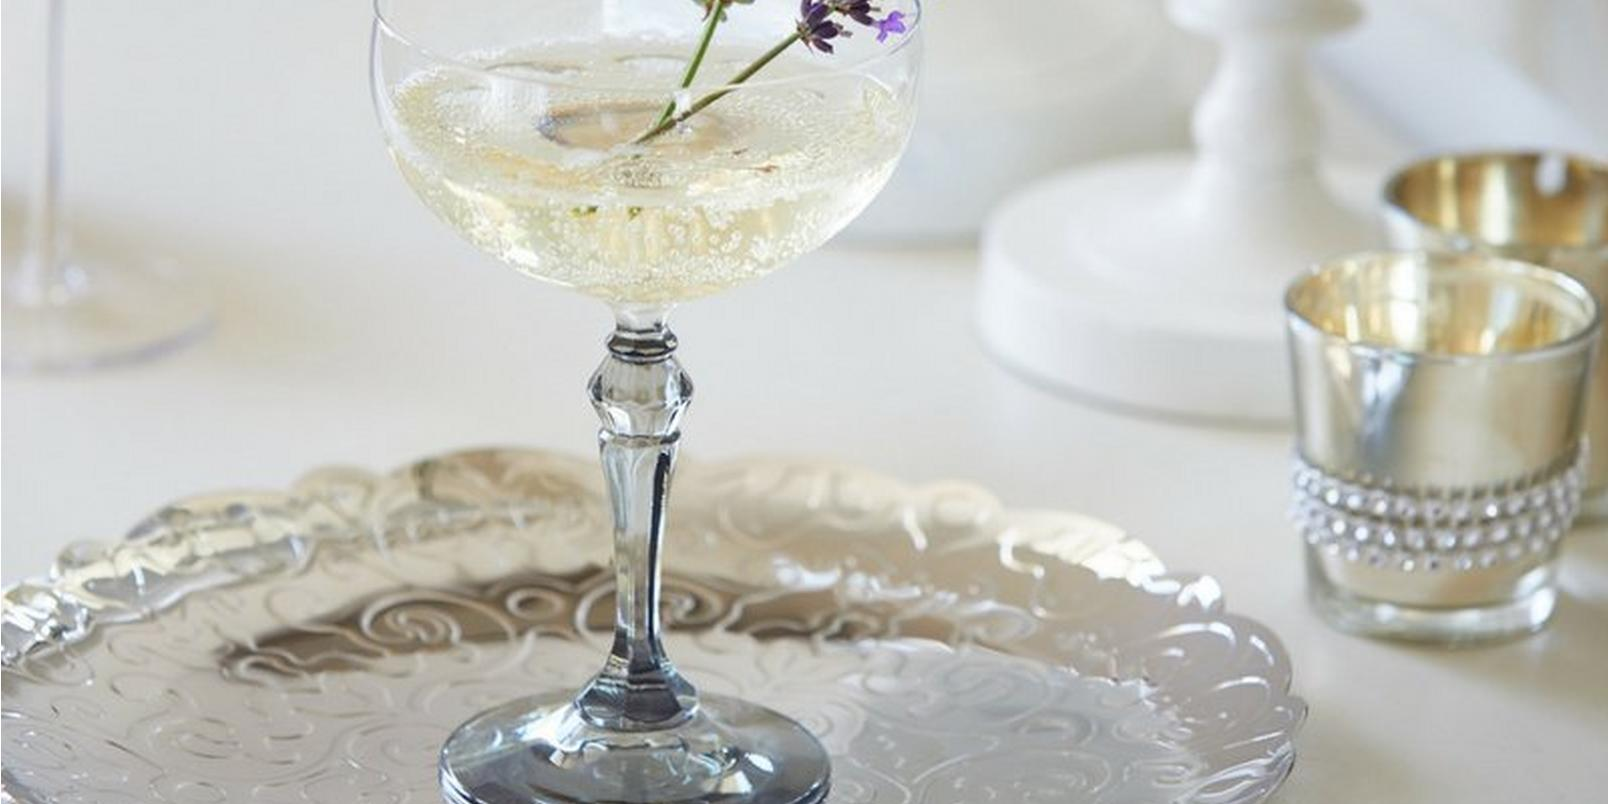 6-Floral-Cocktail-Recipes-Youll-Love-This-Summer4